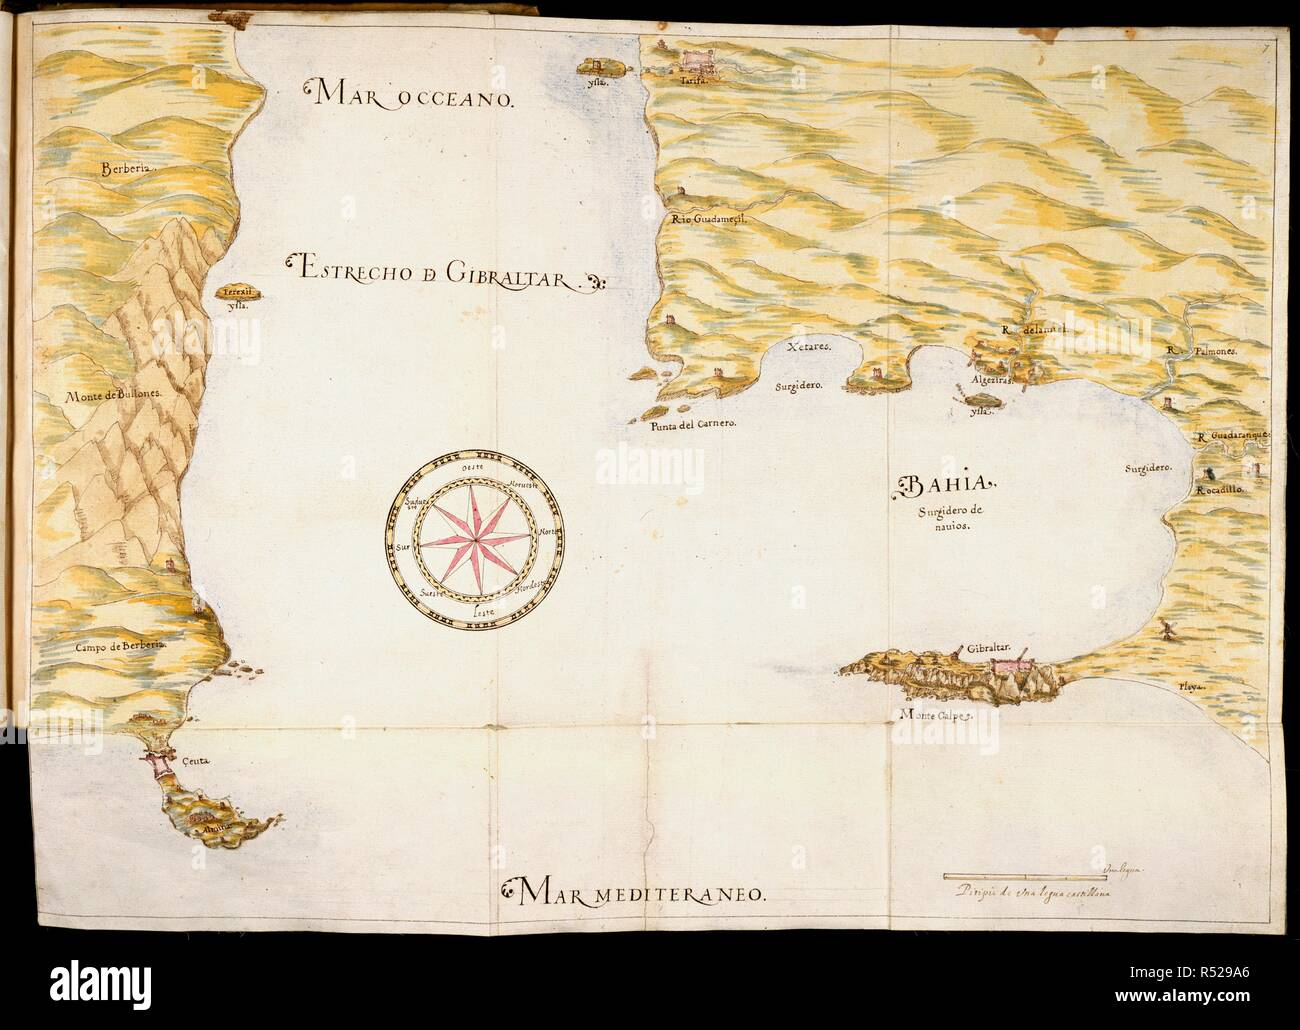 Map of Gibraltar. Gibraltar fortificada. Spain; 1627. (Whole map